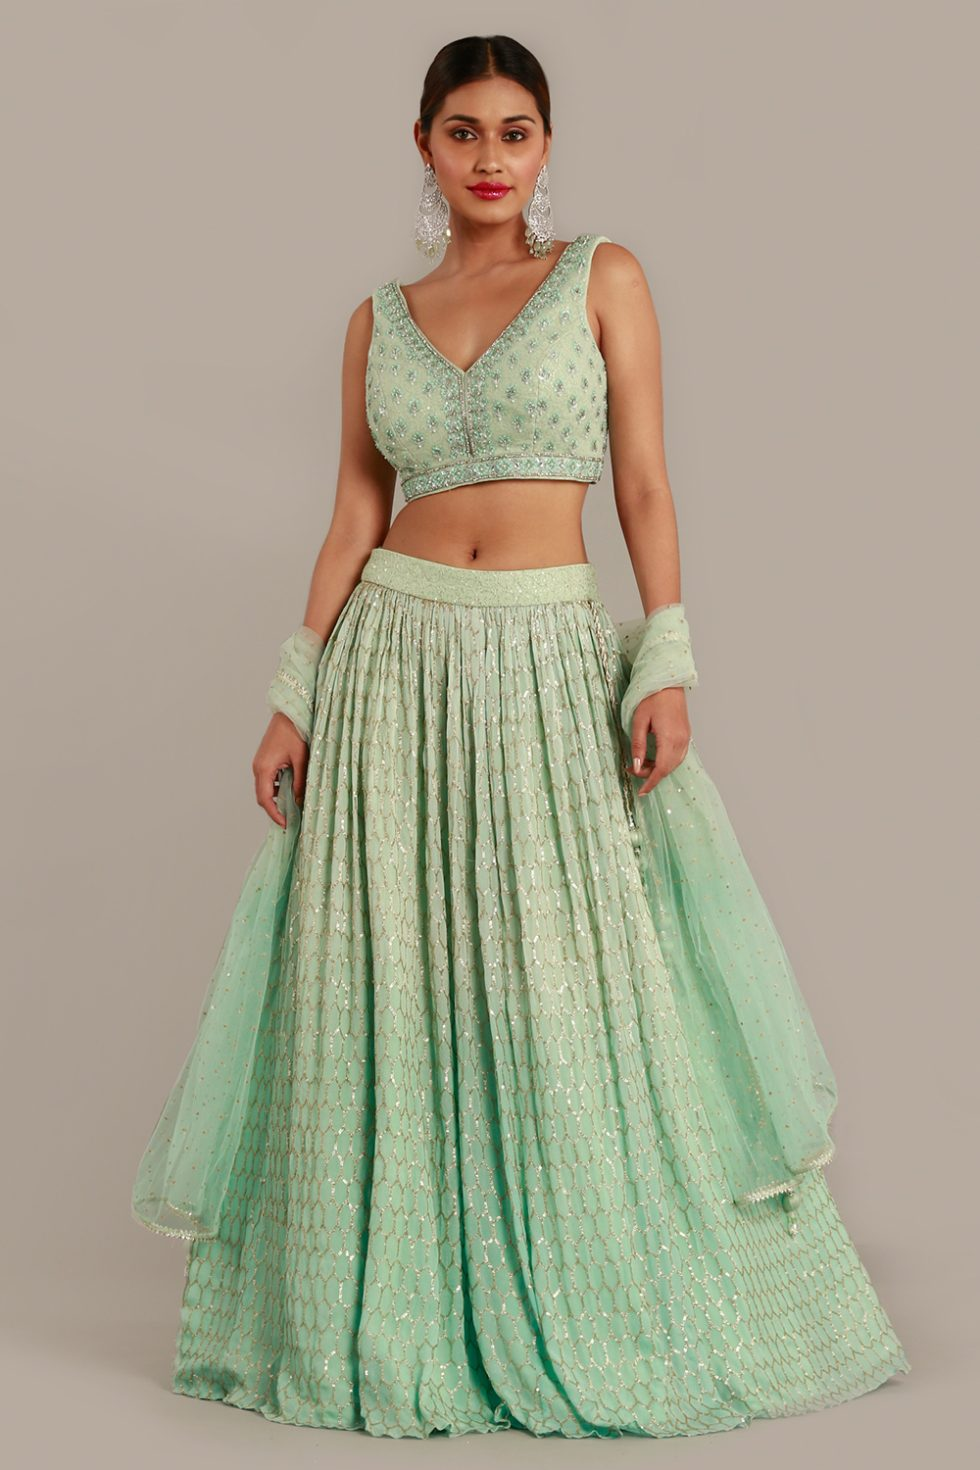 Mint green lehenga set with tie up back choli, self embroidered butis, matching dupatta and gold details